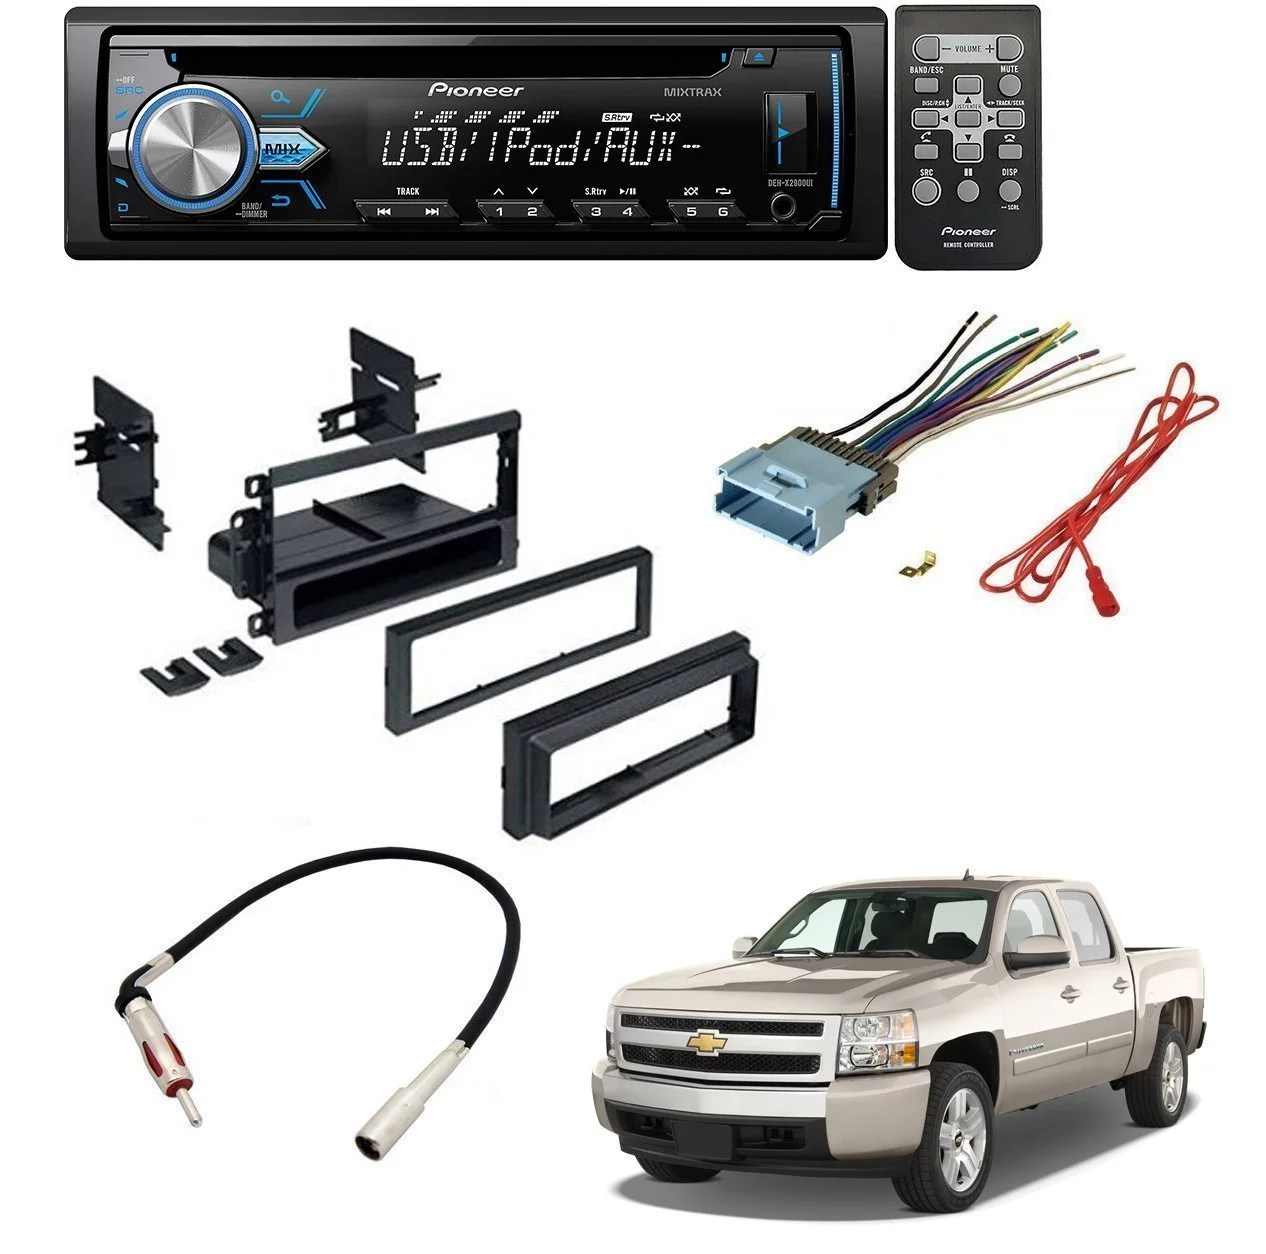 hight resolution of chevrolet 2003 2006 silverado 1500 car stereo dash install mounting kit wire harness radio antenna w pioneer deh x2900ui single din in dash cd receiver